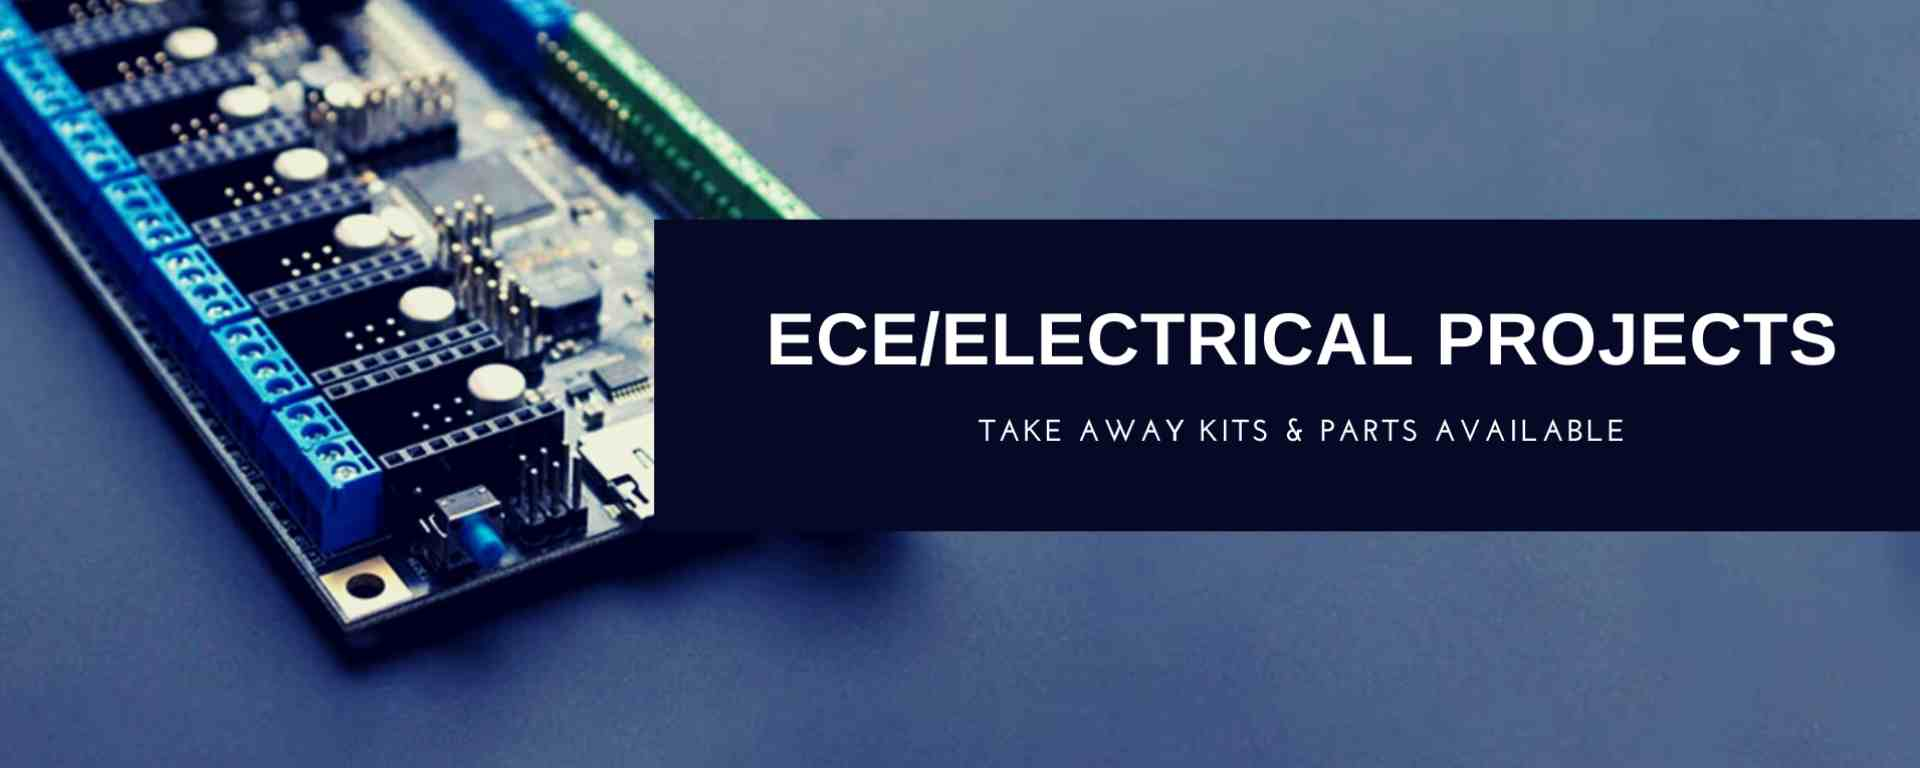 ELECTRONICS-ELECTRICAL PROJECTS